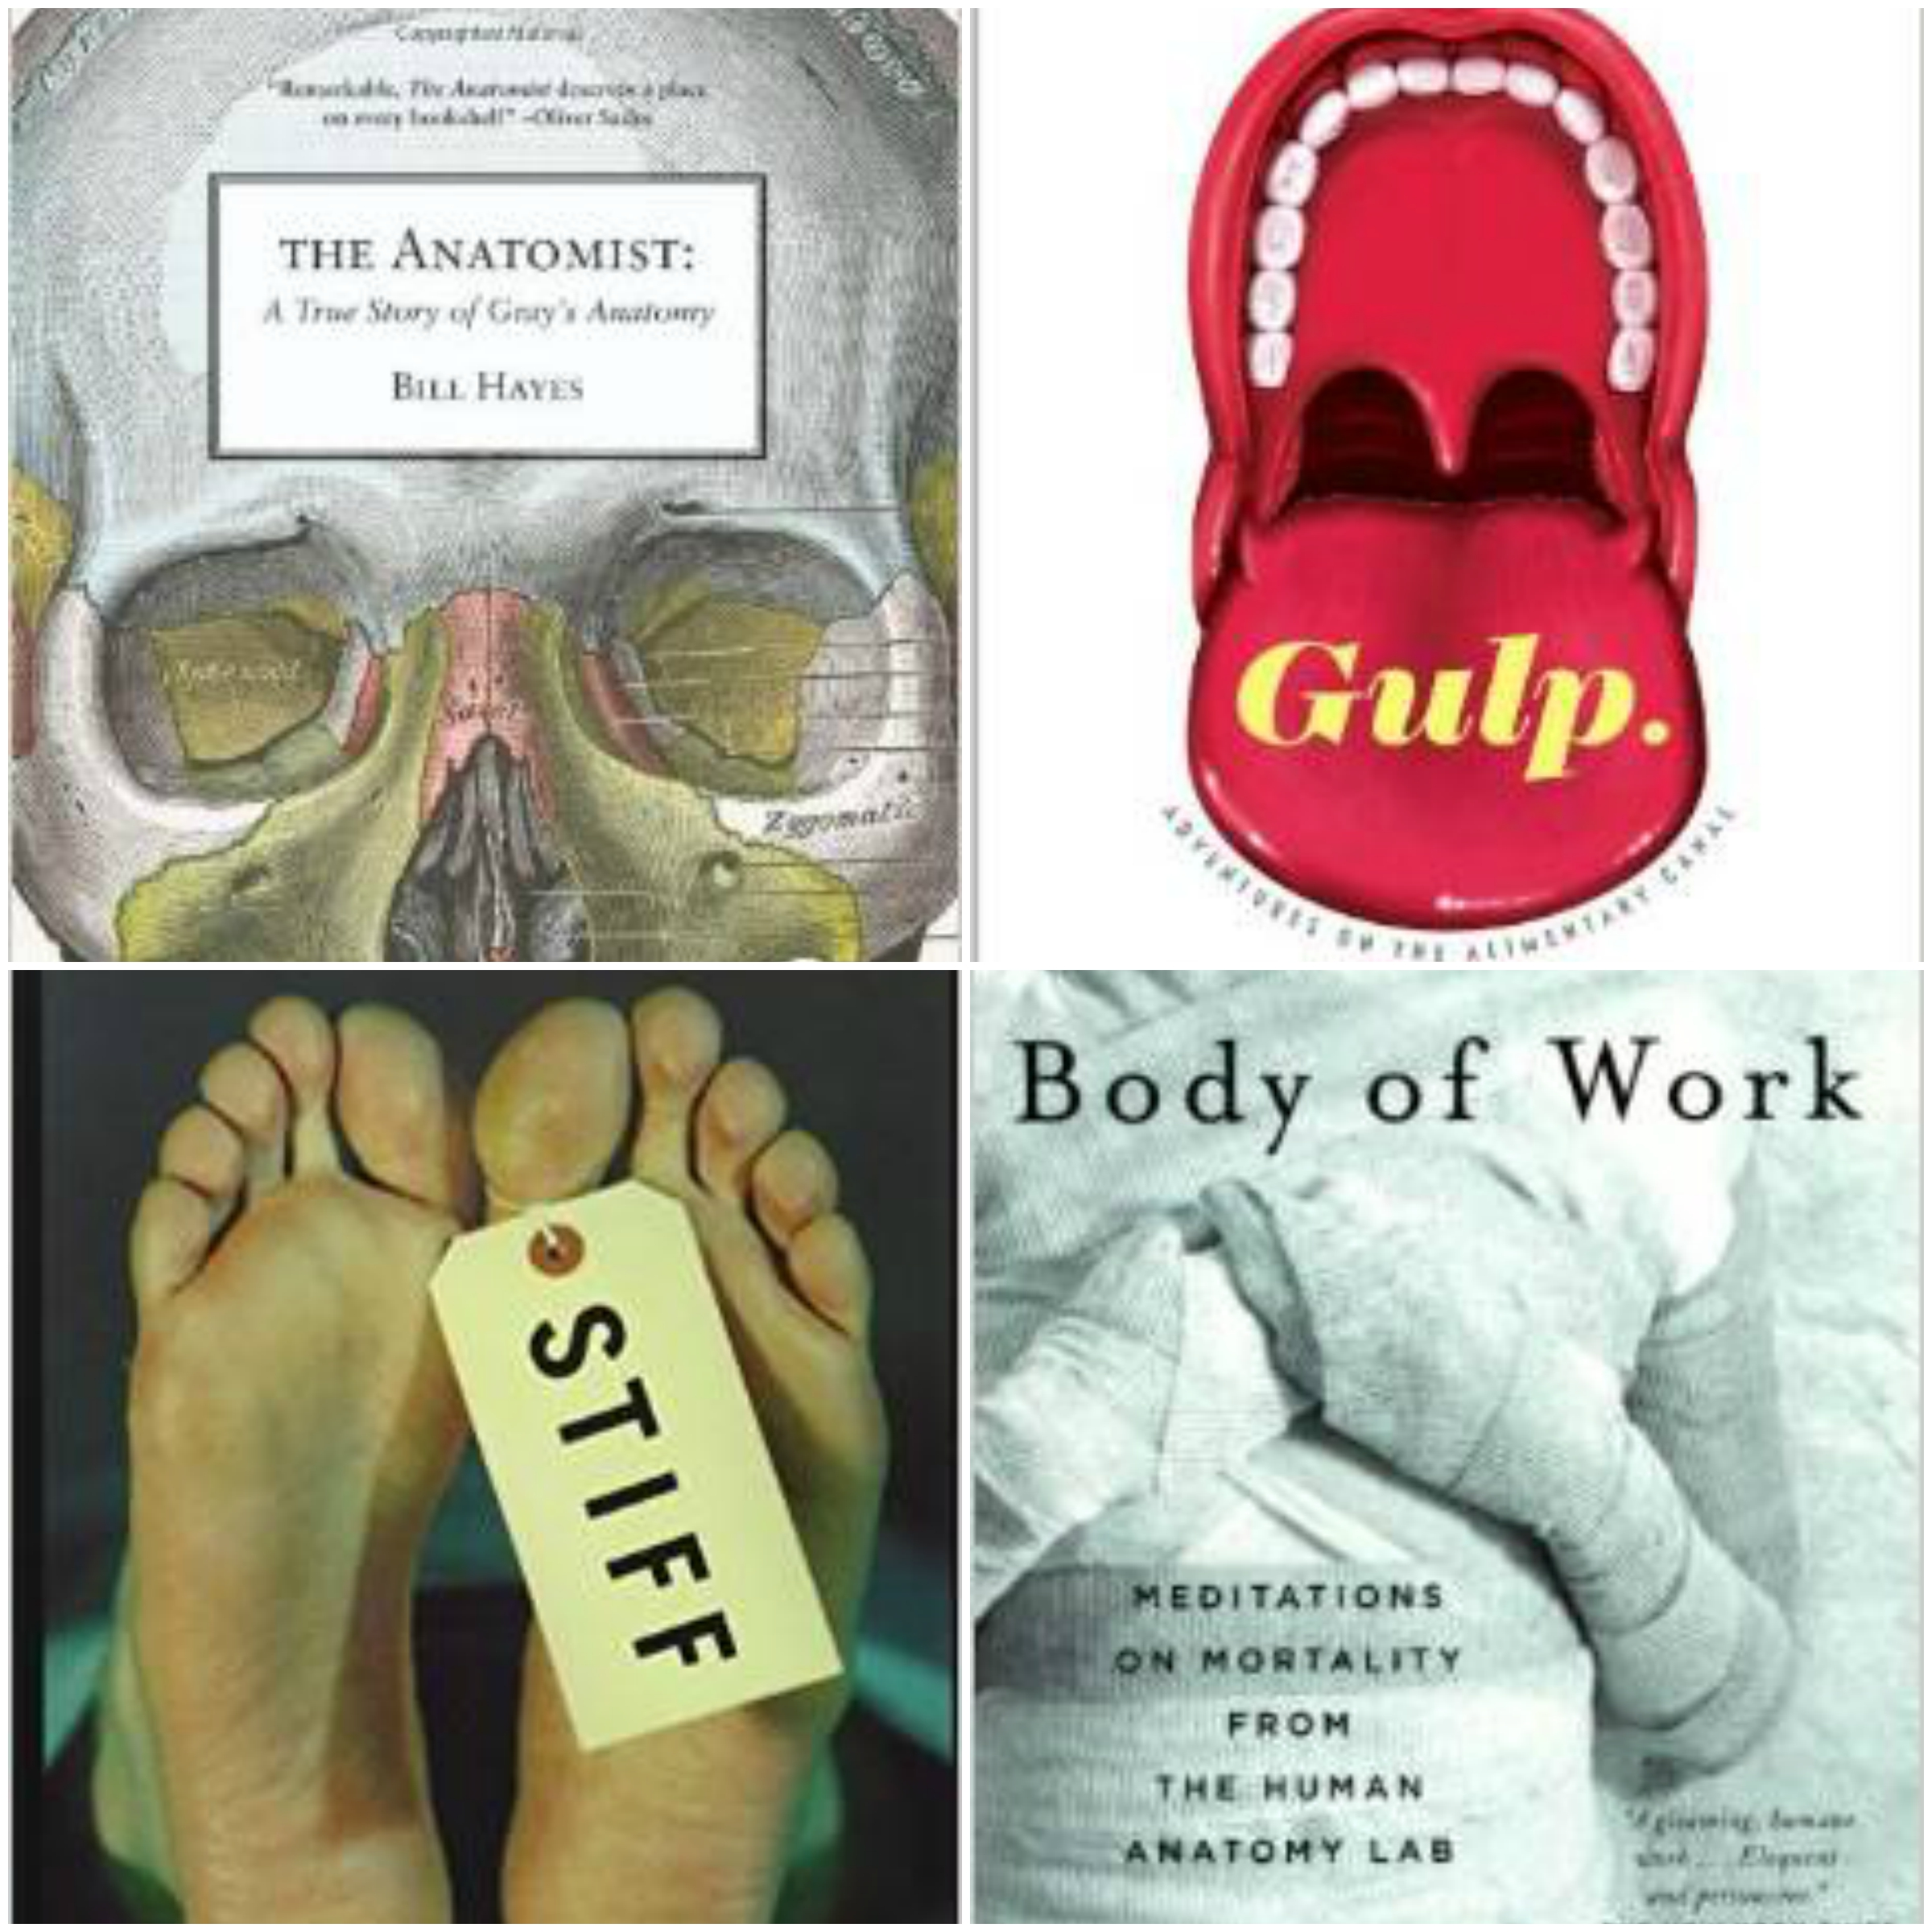 the anatomist a true story of Books by writer / photographer bill hayes, partner of oliver sacks, and author of insomniac city, the anatomist the anatomist: a true story of gray's anatomy.